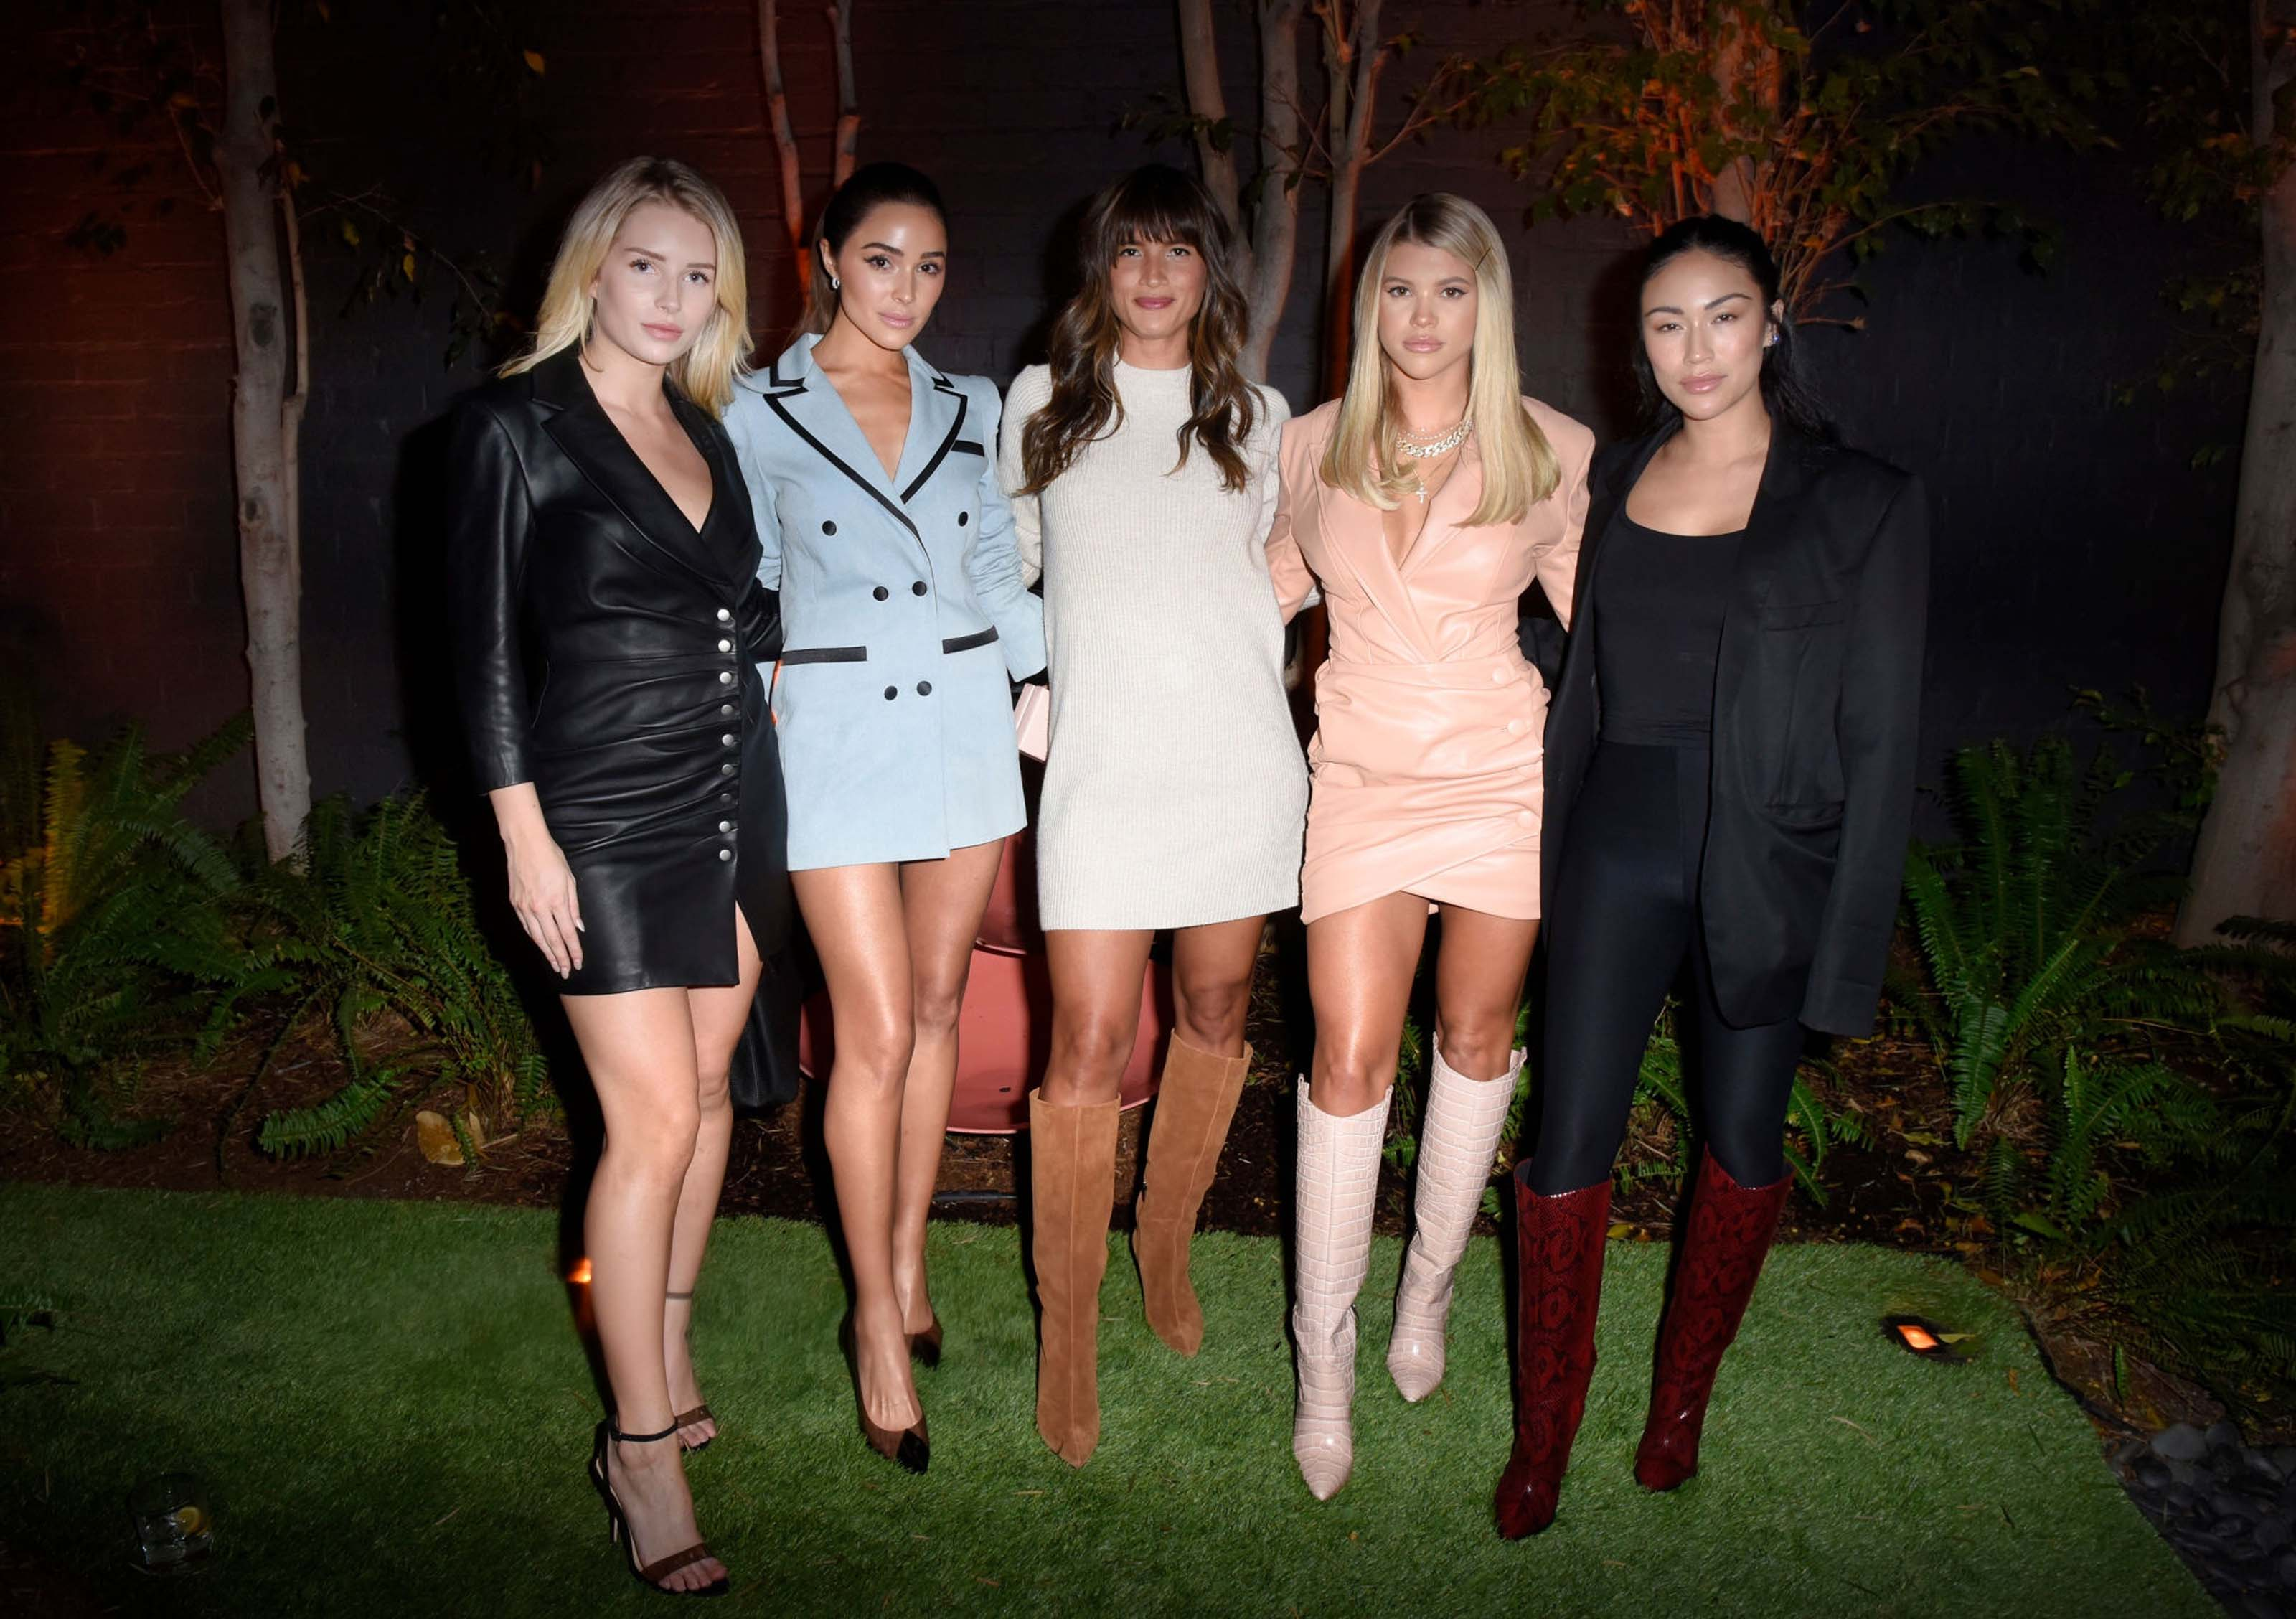 Sofia Richie & Lottie Moss attend Vince Camuto's Sunset Soiree